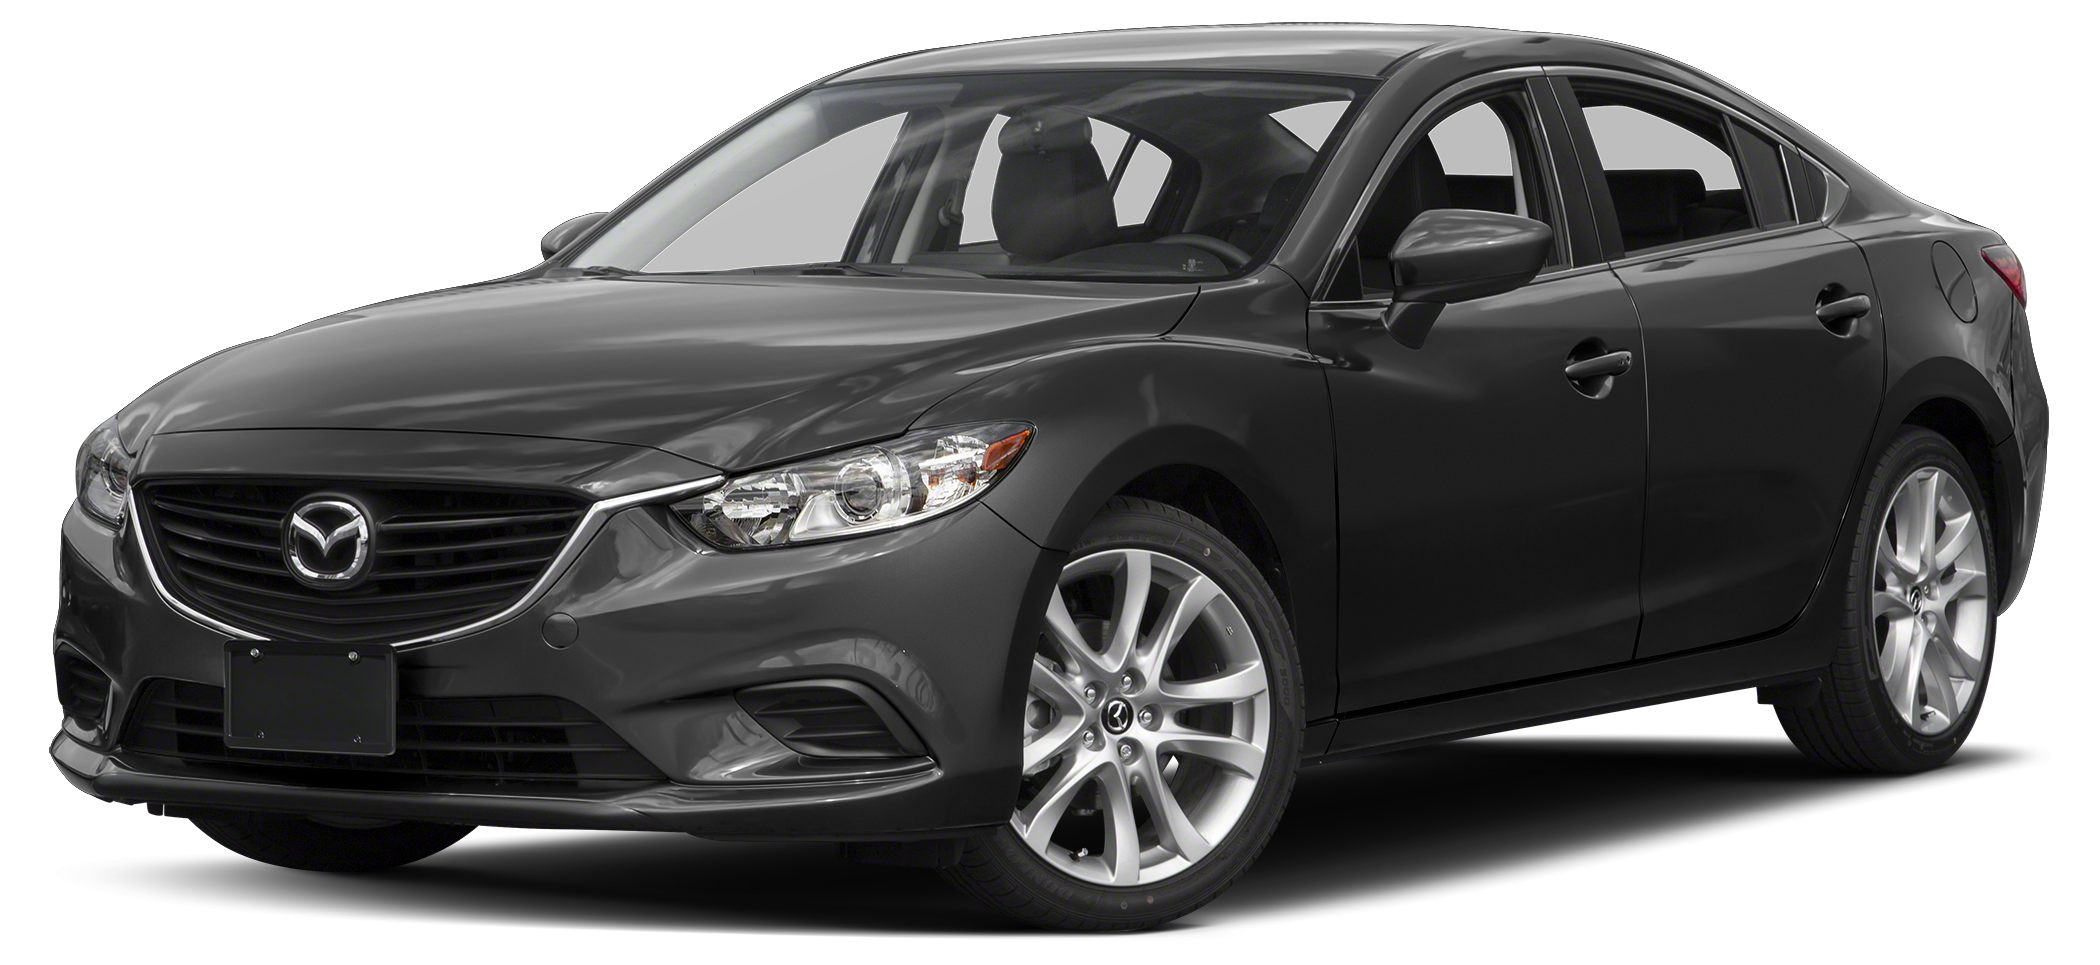 2016 Mazda MAZDA6 i Sport Introducing the 2016 Mazda Mazda6 The safety you need and the features